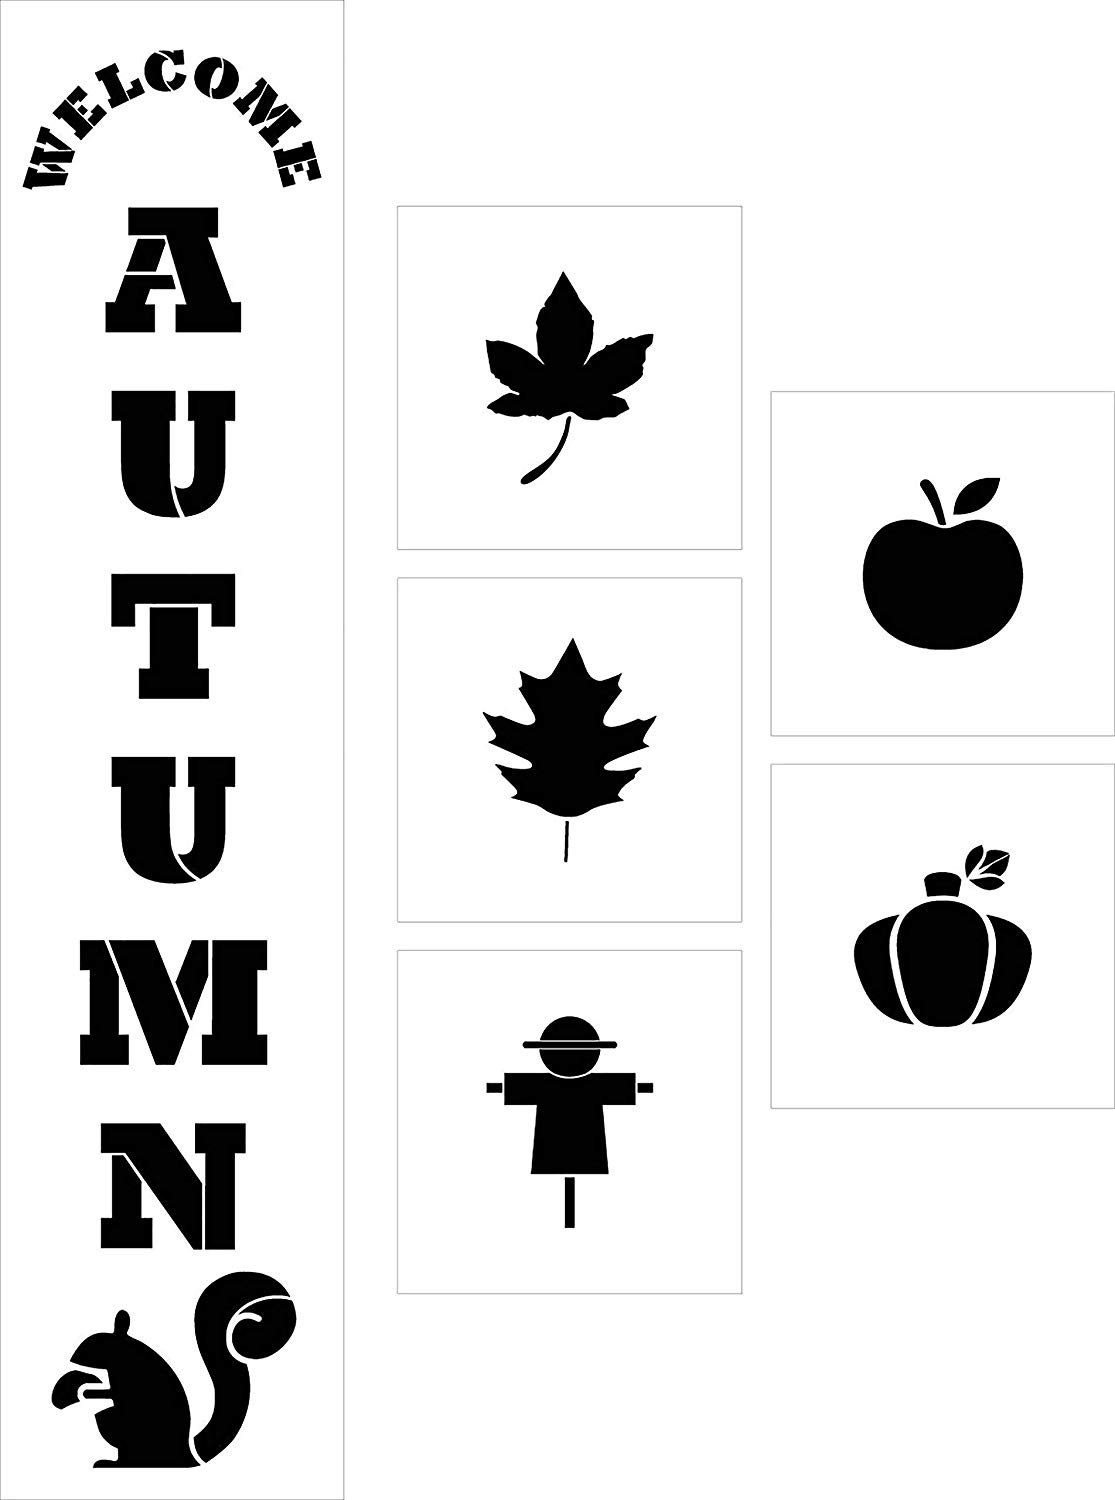 Welcome Autumn Tall Porch 8 Piece Stencil Set by StudioR12 | Apple Pumpkin Leaf | DIY Large Vertical Fall Outdoor Home Decor | Craft & Paint Wood Leaner Signs | Reusable Mylar Template | Size 4ft